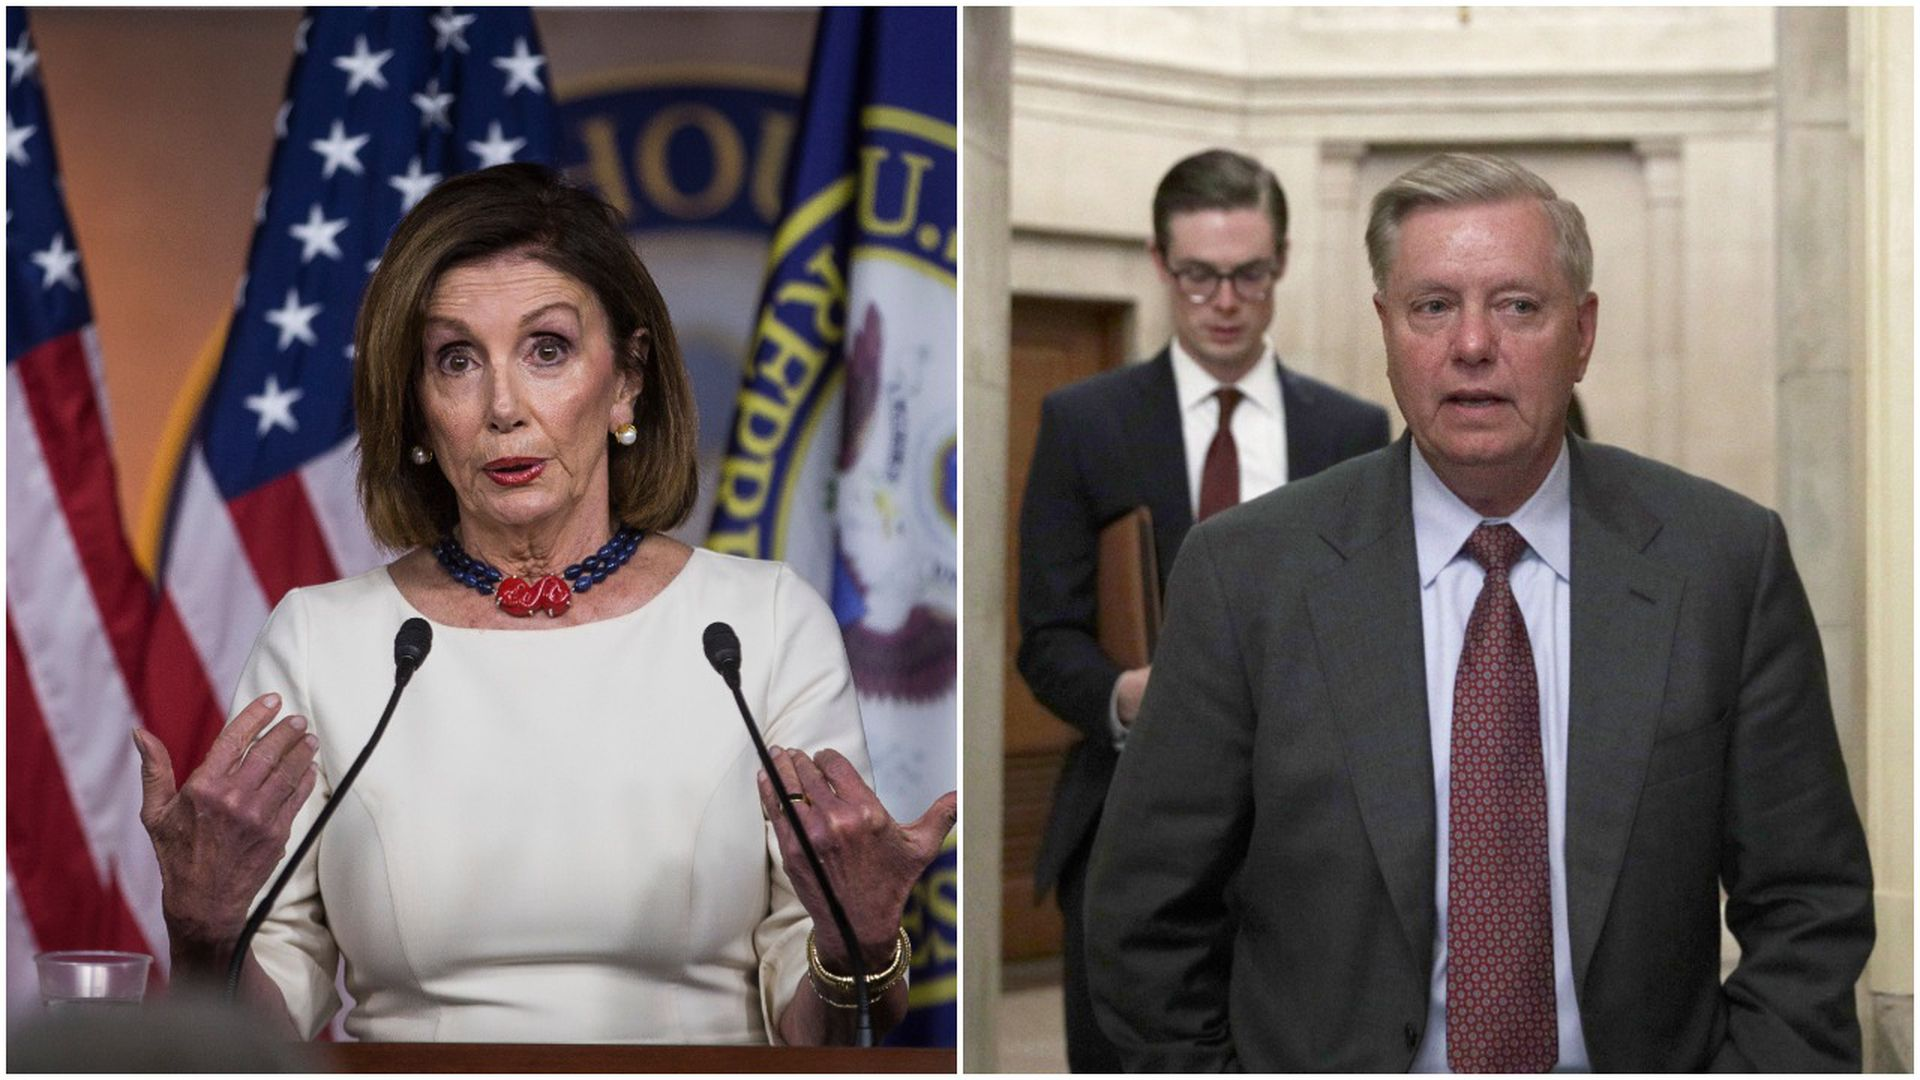 Nancy pelosi and lindsey graham